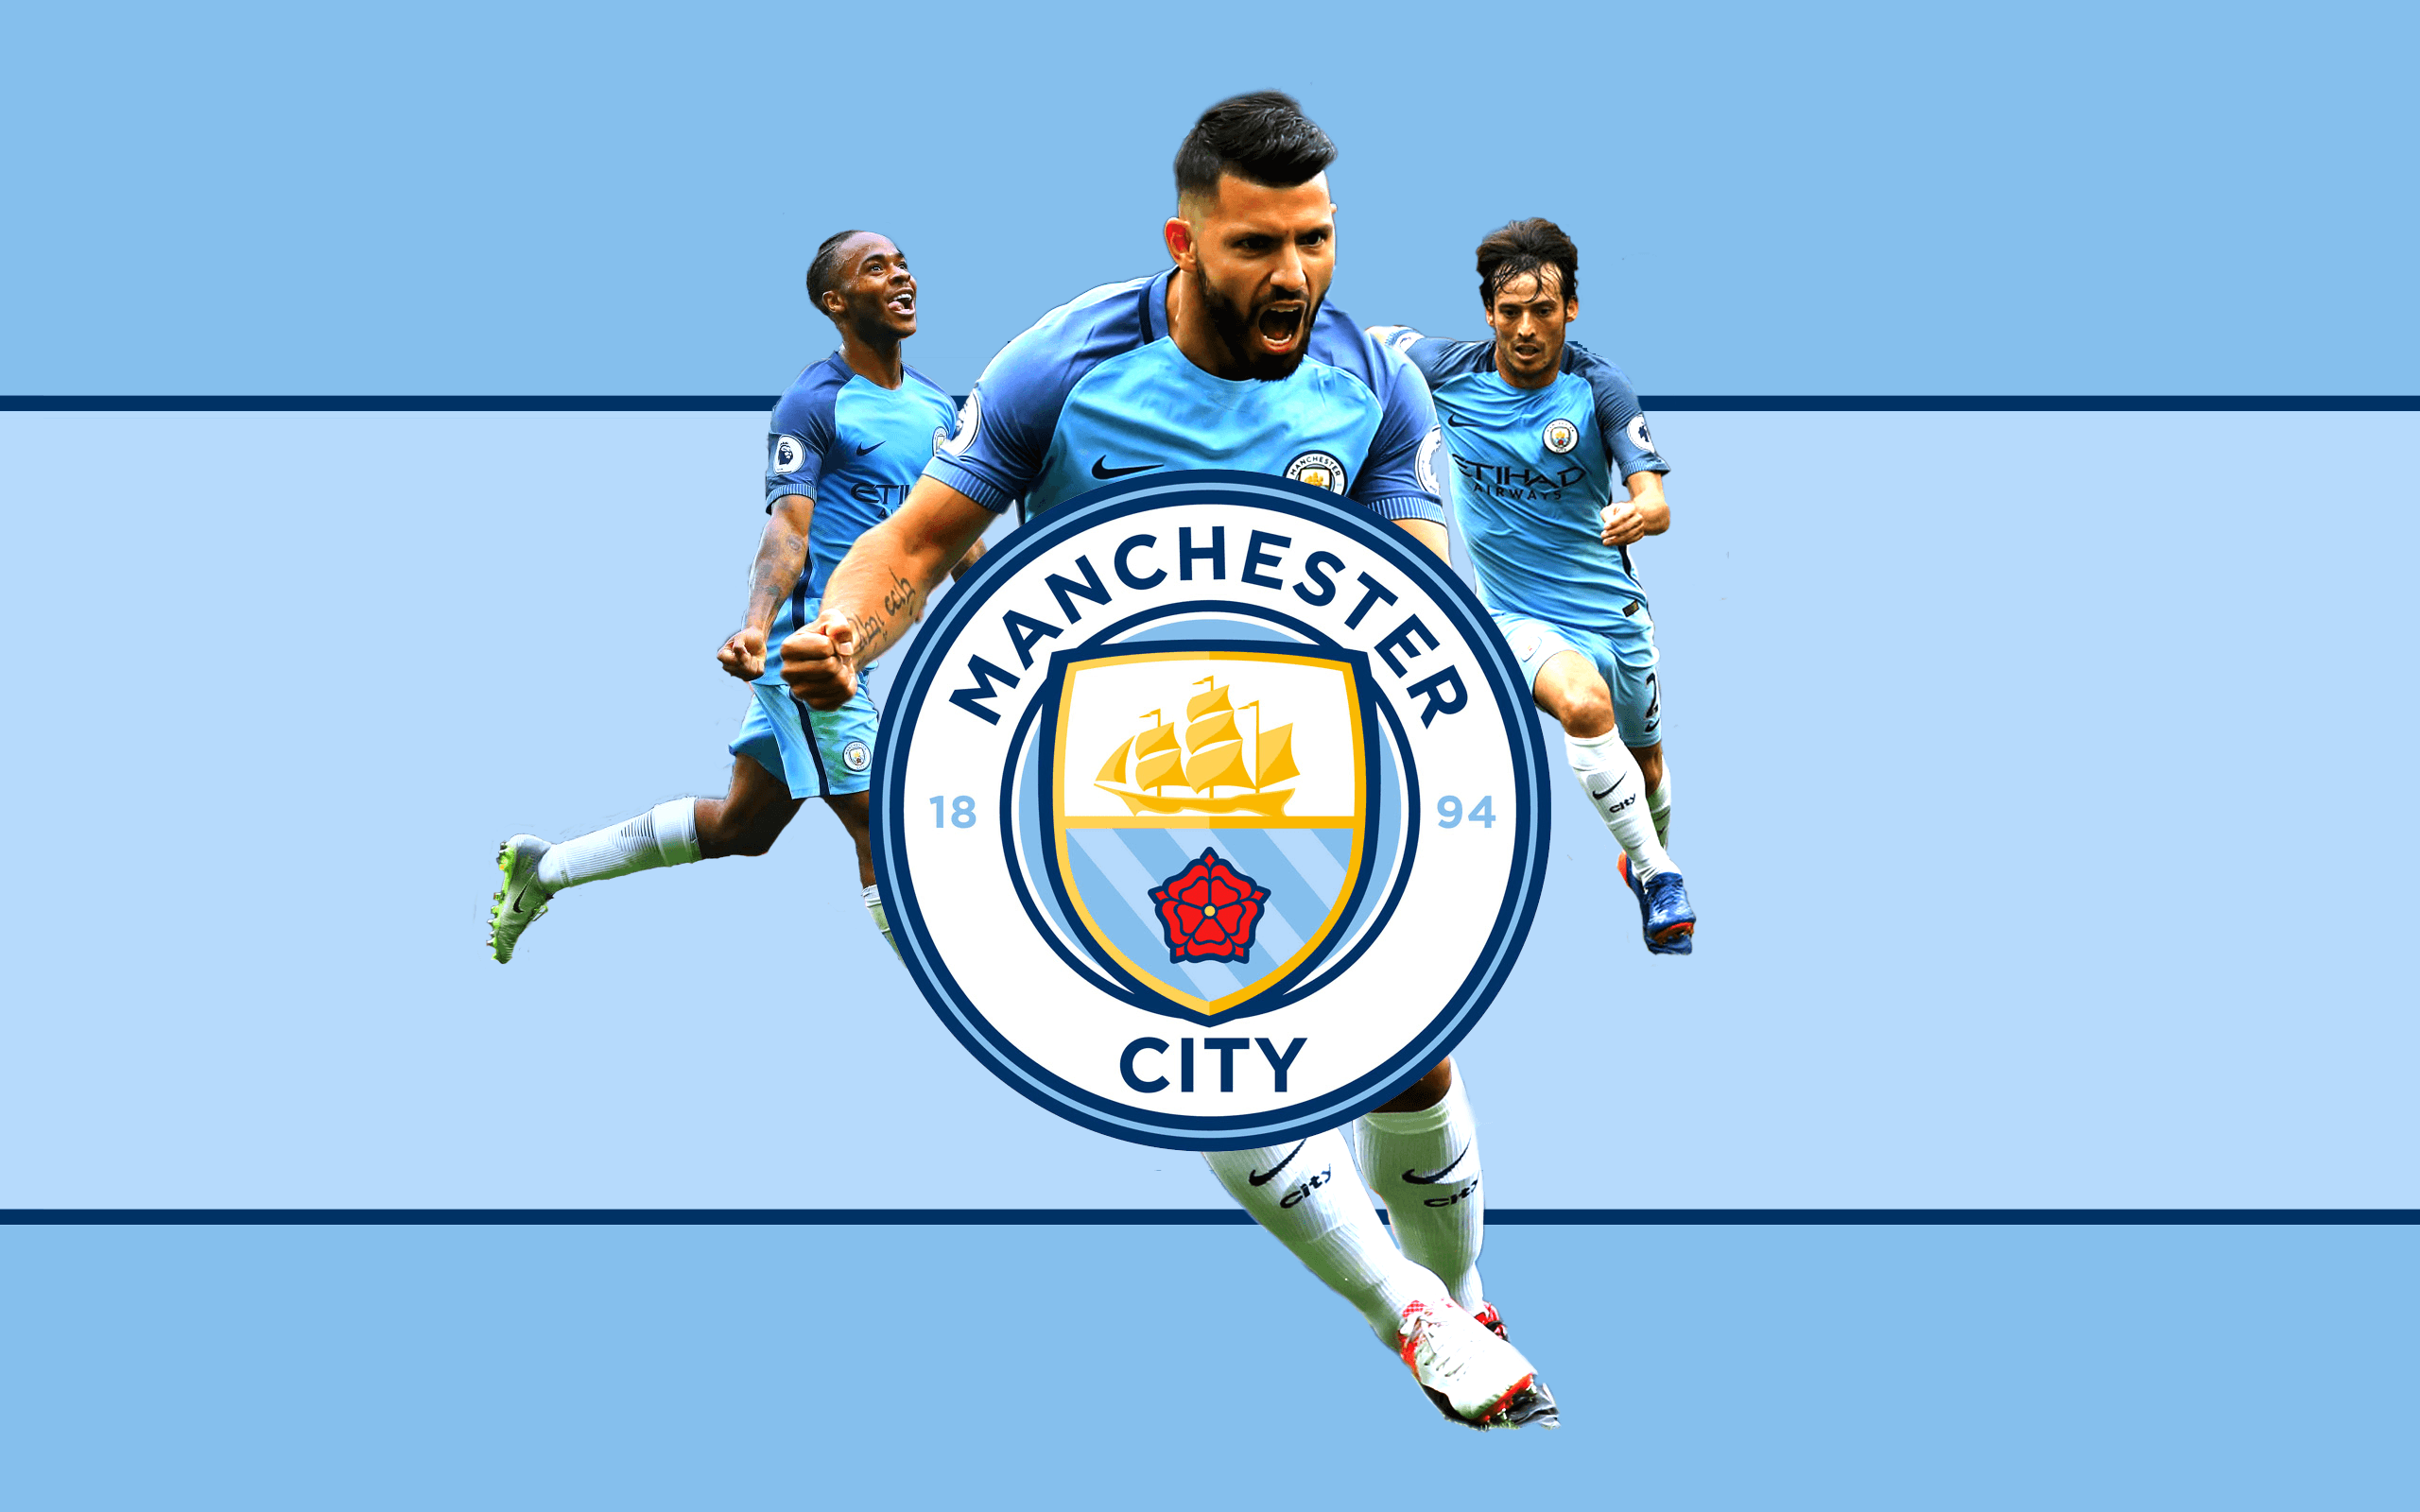 Sterling Manchester City Wallpapers - Wallpaper Cave